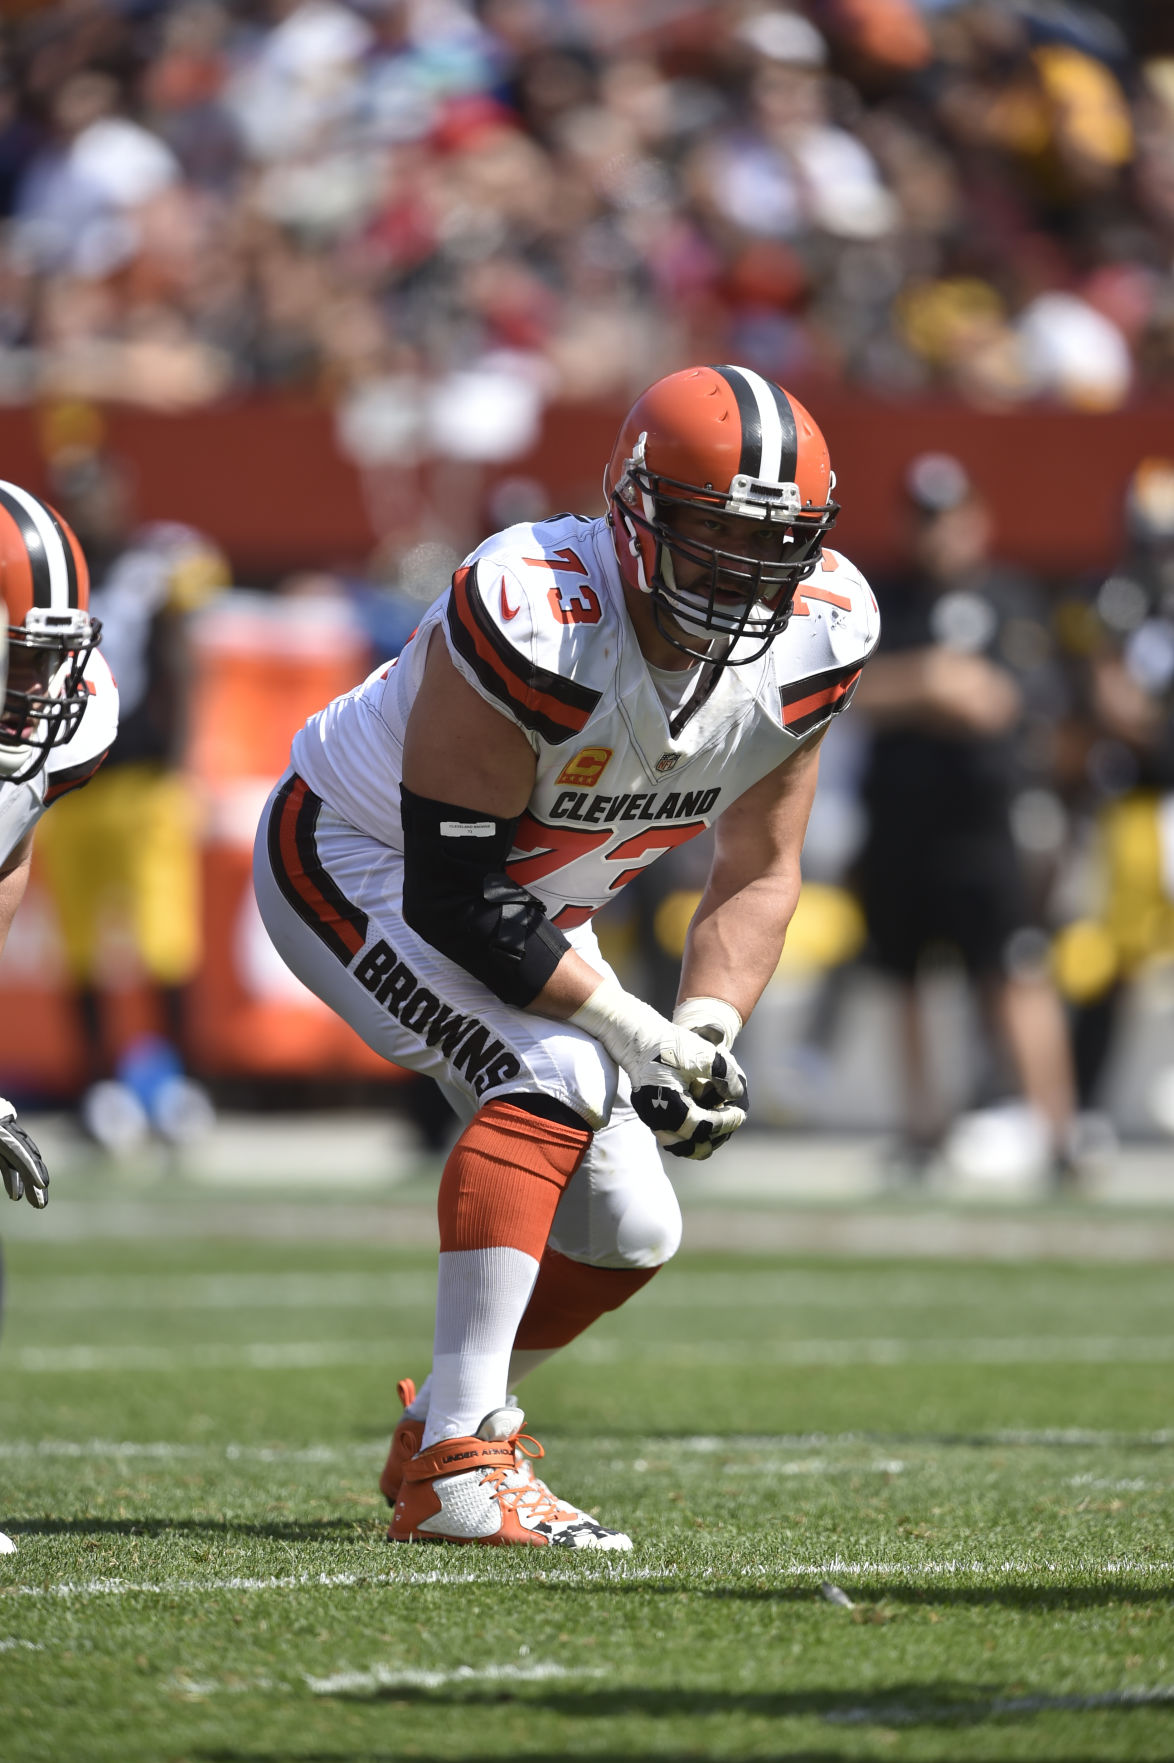 Iconic Ironman Browns offensive tackle Joe Thomas done for